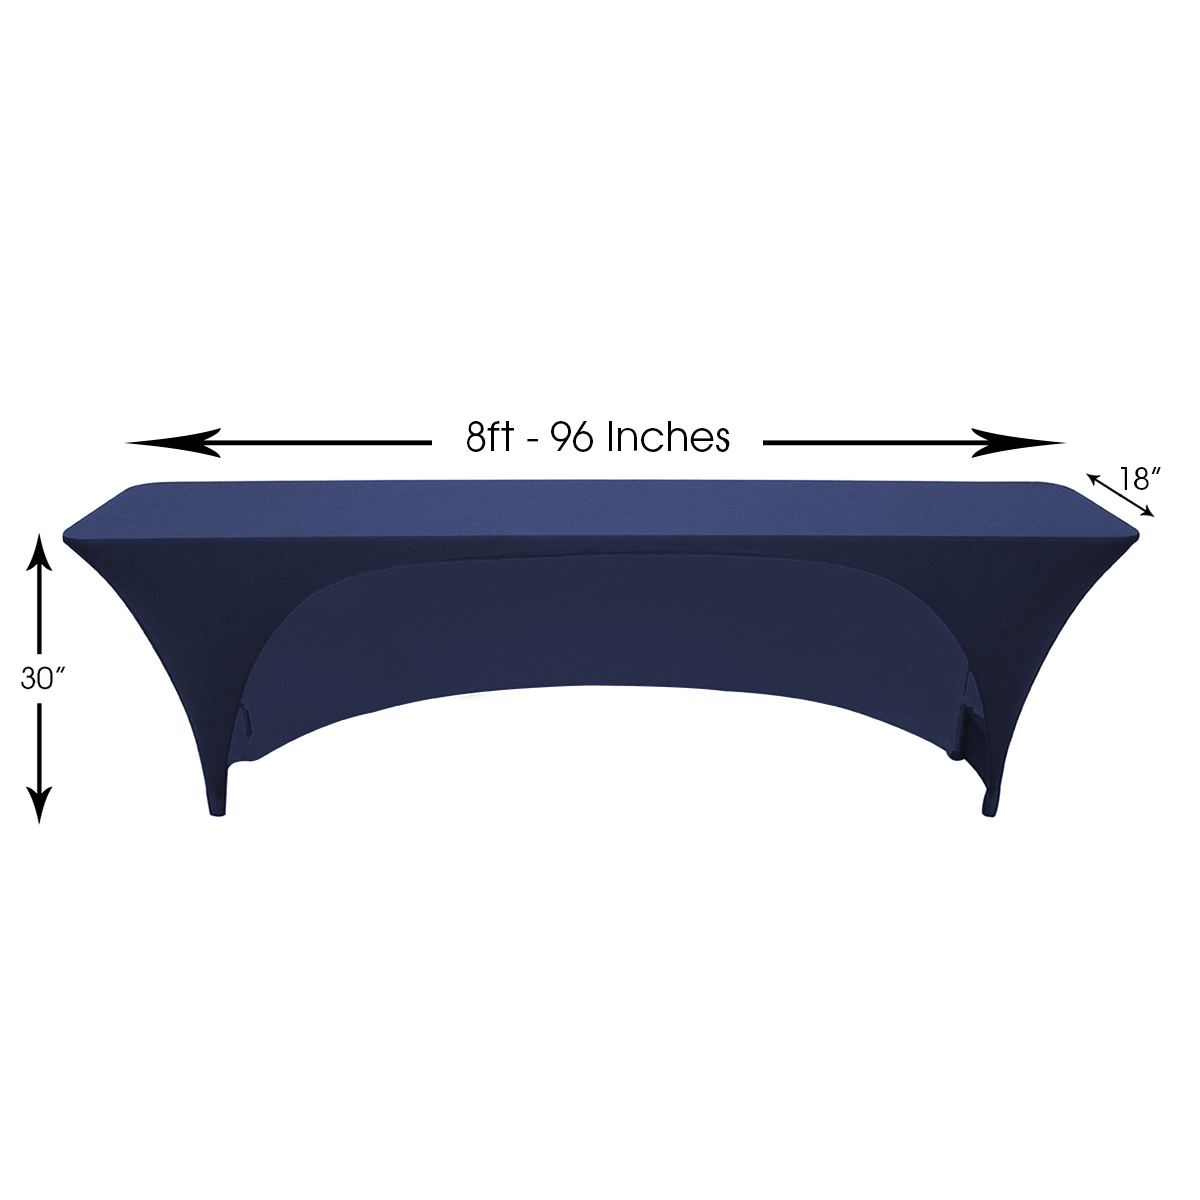 stretch-spandex-8ft-18-inches-open-back-rectangular-table-covers-navy-dimensions.jpg